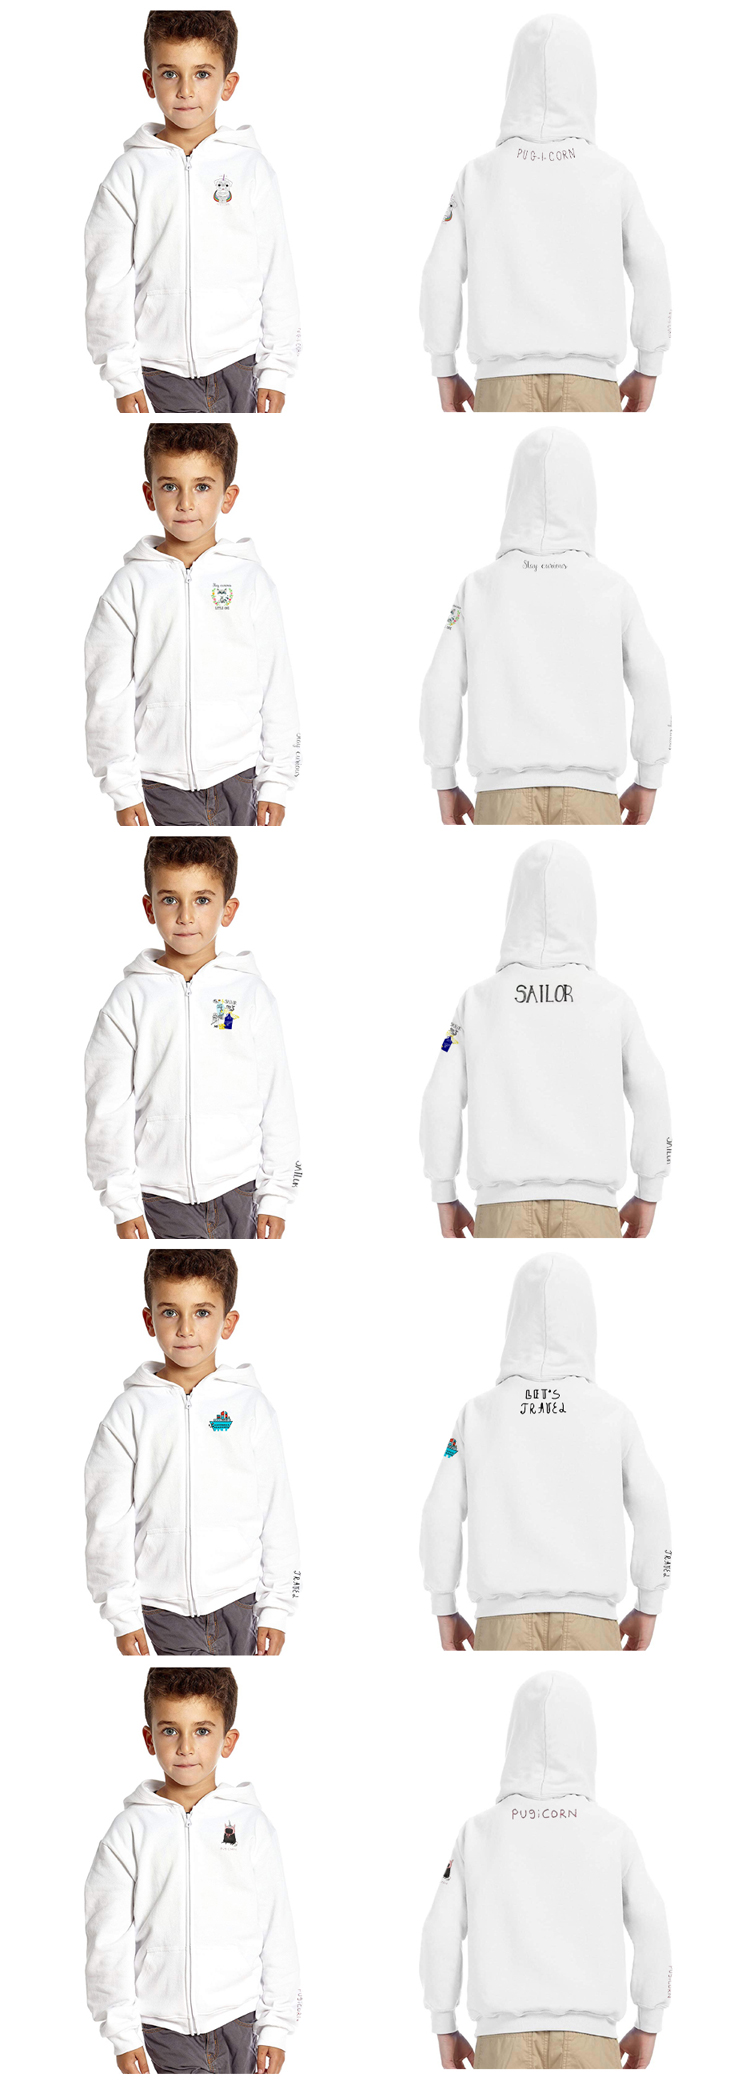 kids zipper hoodies, kids hoodies, hooded sweatshirts